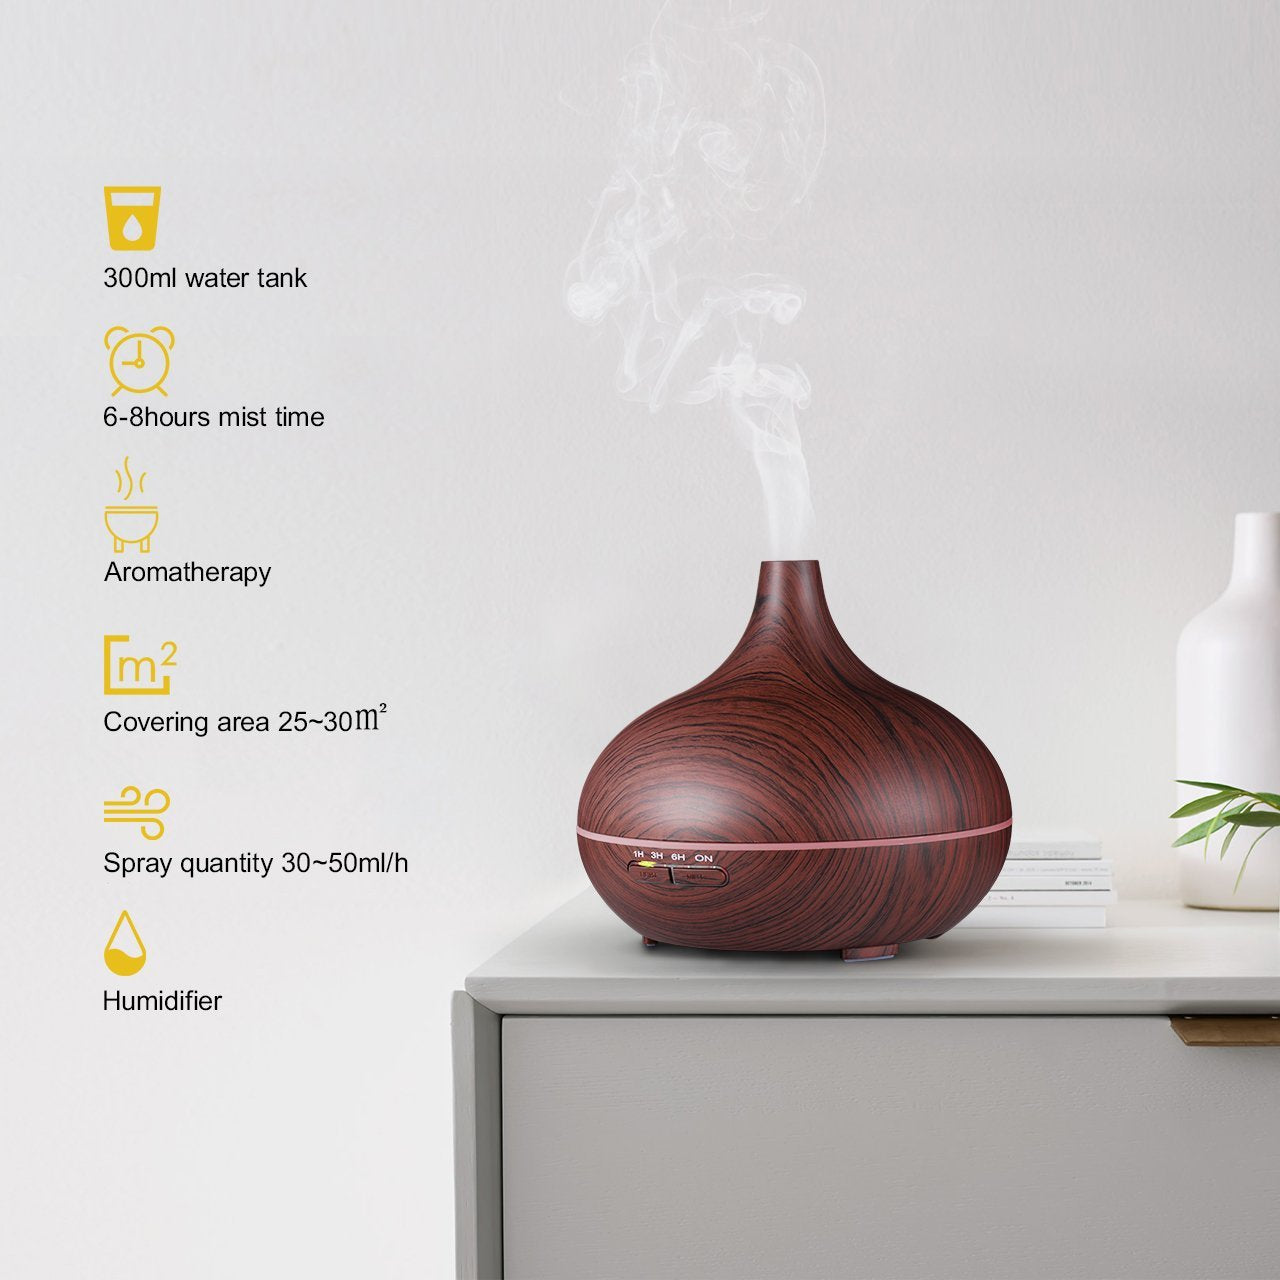 300ml Cool Mist Humidifier Ultrasonic Aroma Essential Oil Diffuser for Office Home Bedroom Living Room Study Yoga Spa ttle